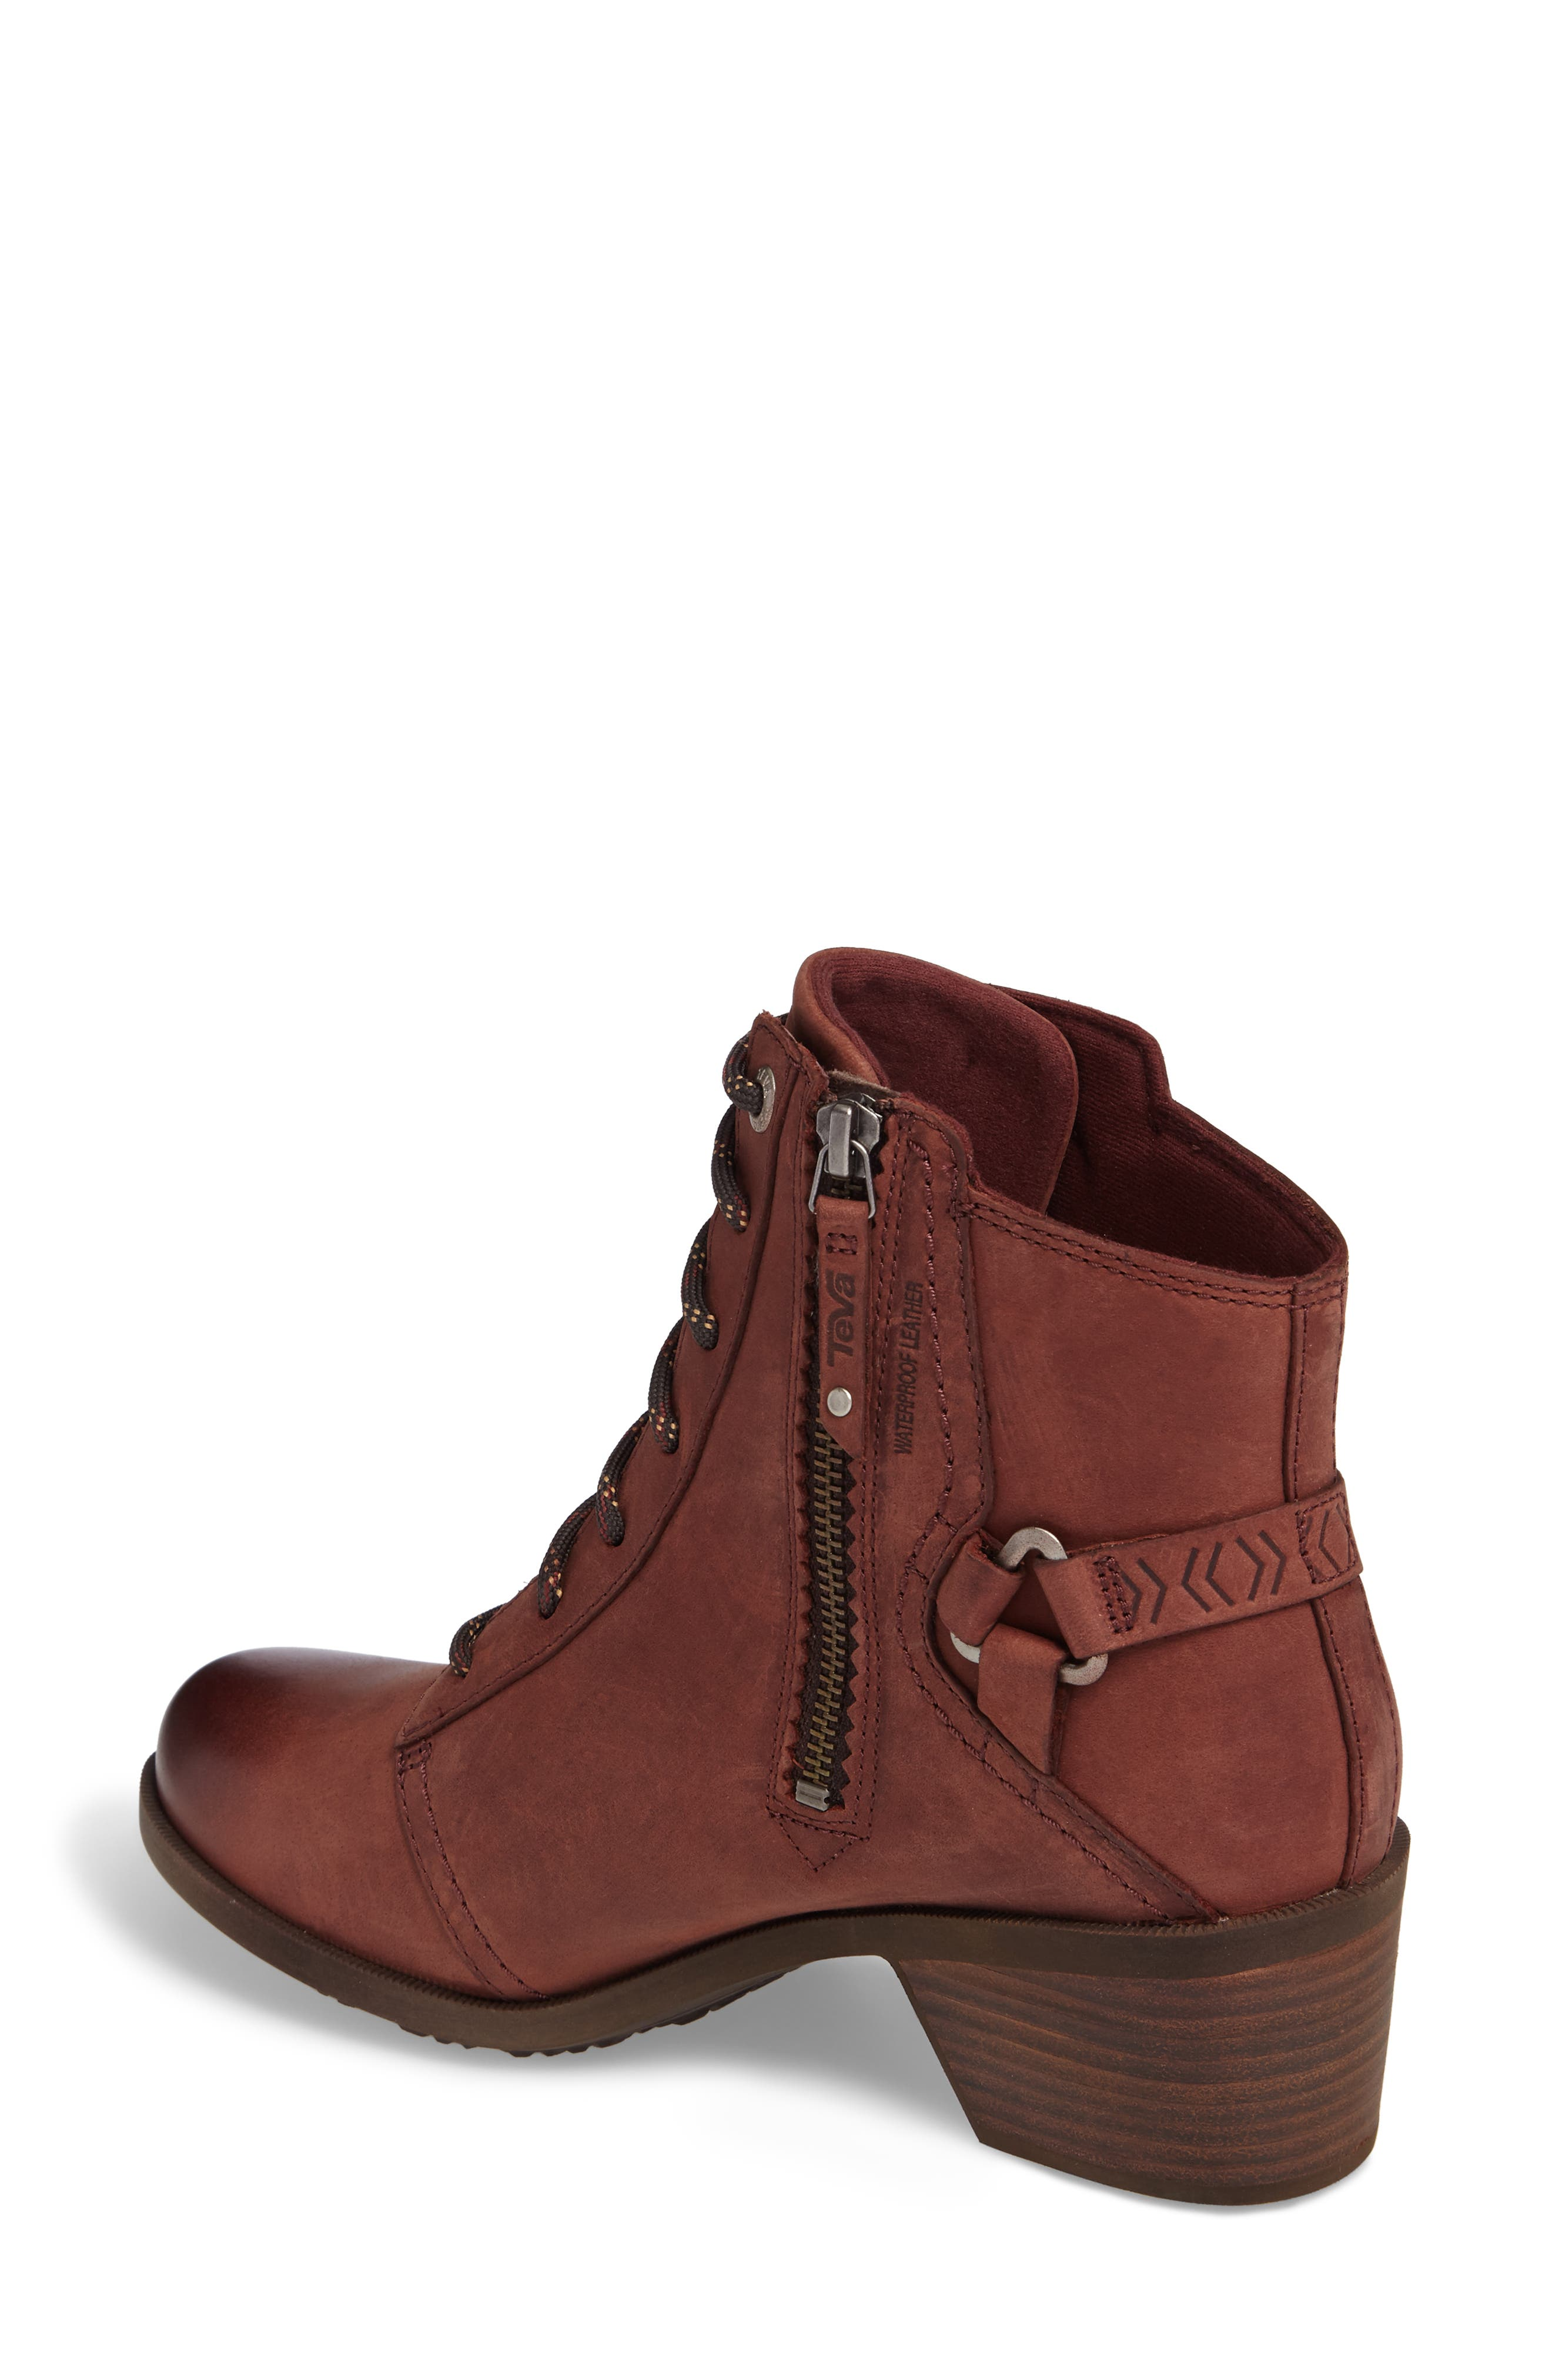 Foxy Lace-Up Waterproof Boot,                             Alternate thumbnail 2, color,                             Redwood Leather